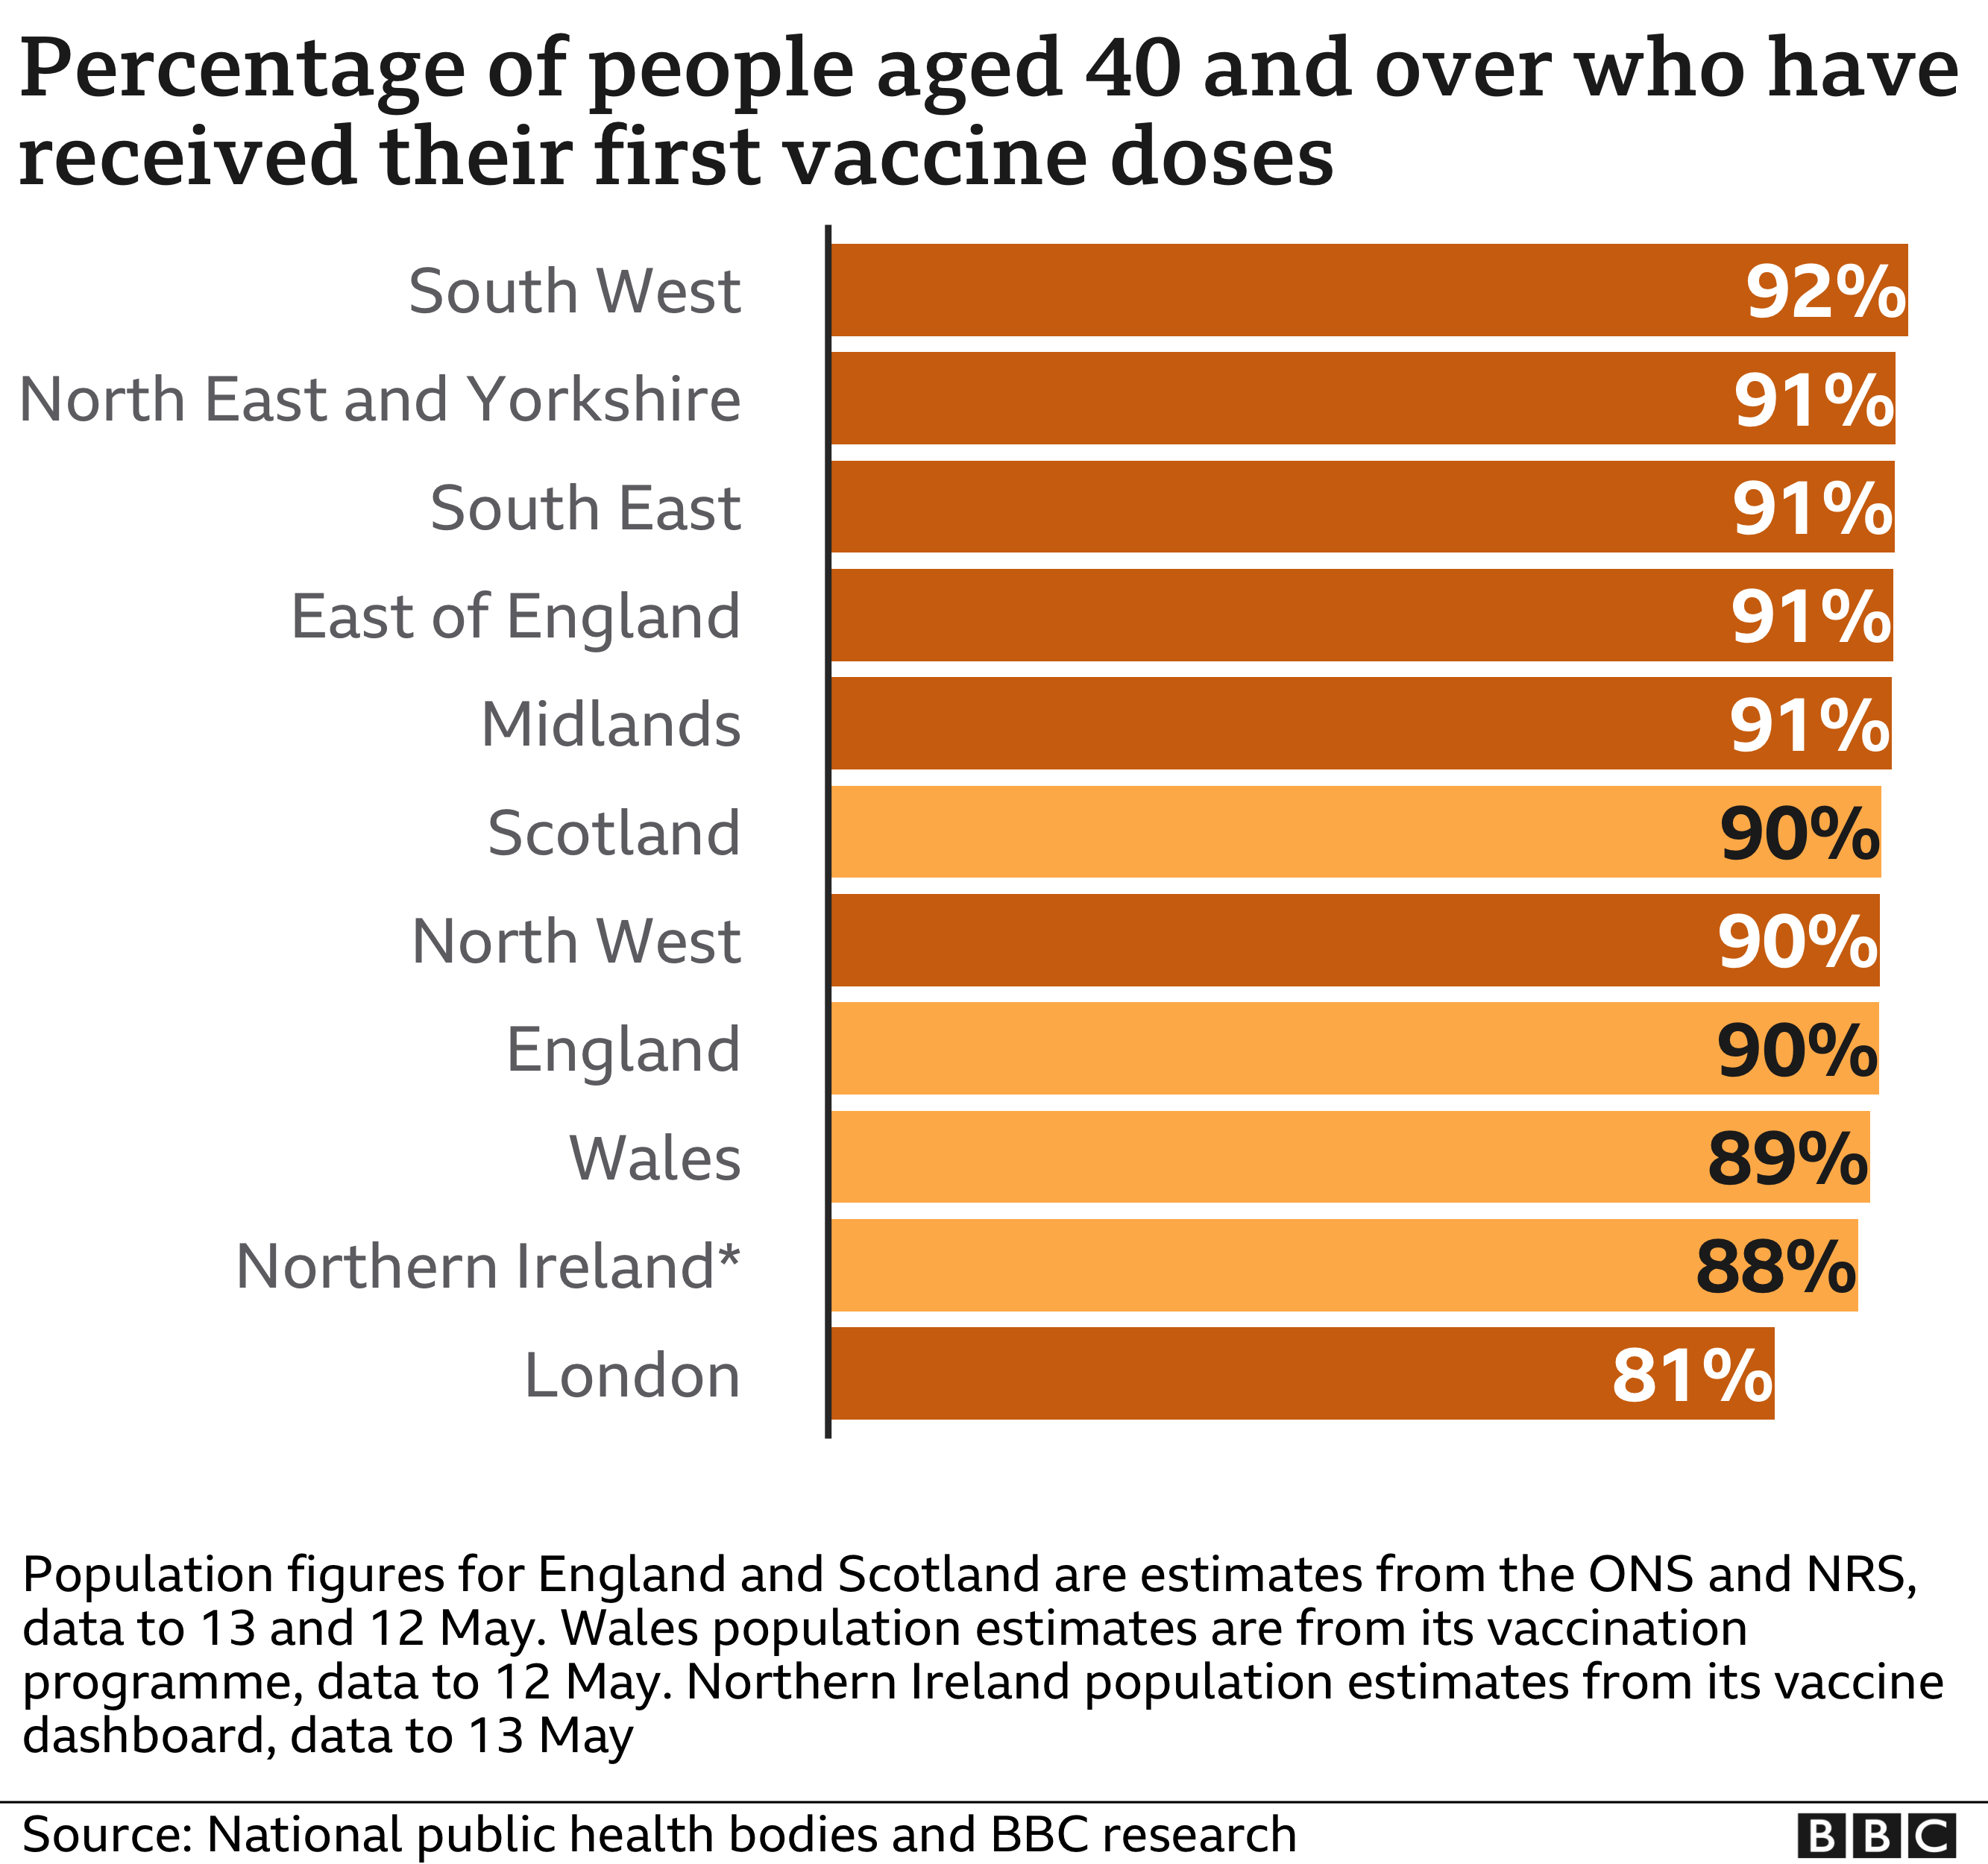 Chart of vaccine take up by region and UK nation - 92% of those aged 40 or over in the South West have received one dose of the vaccine, compared to 81% in London